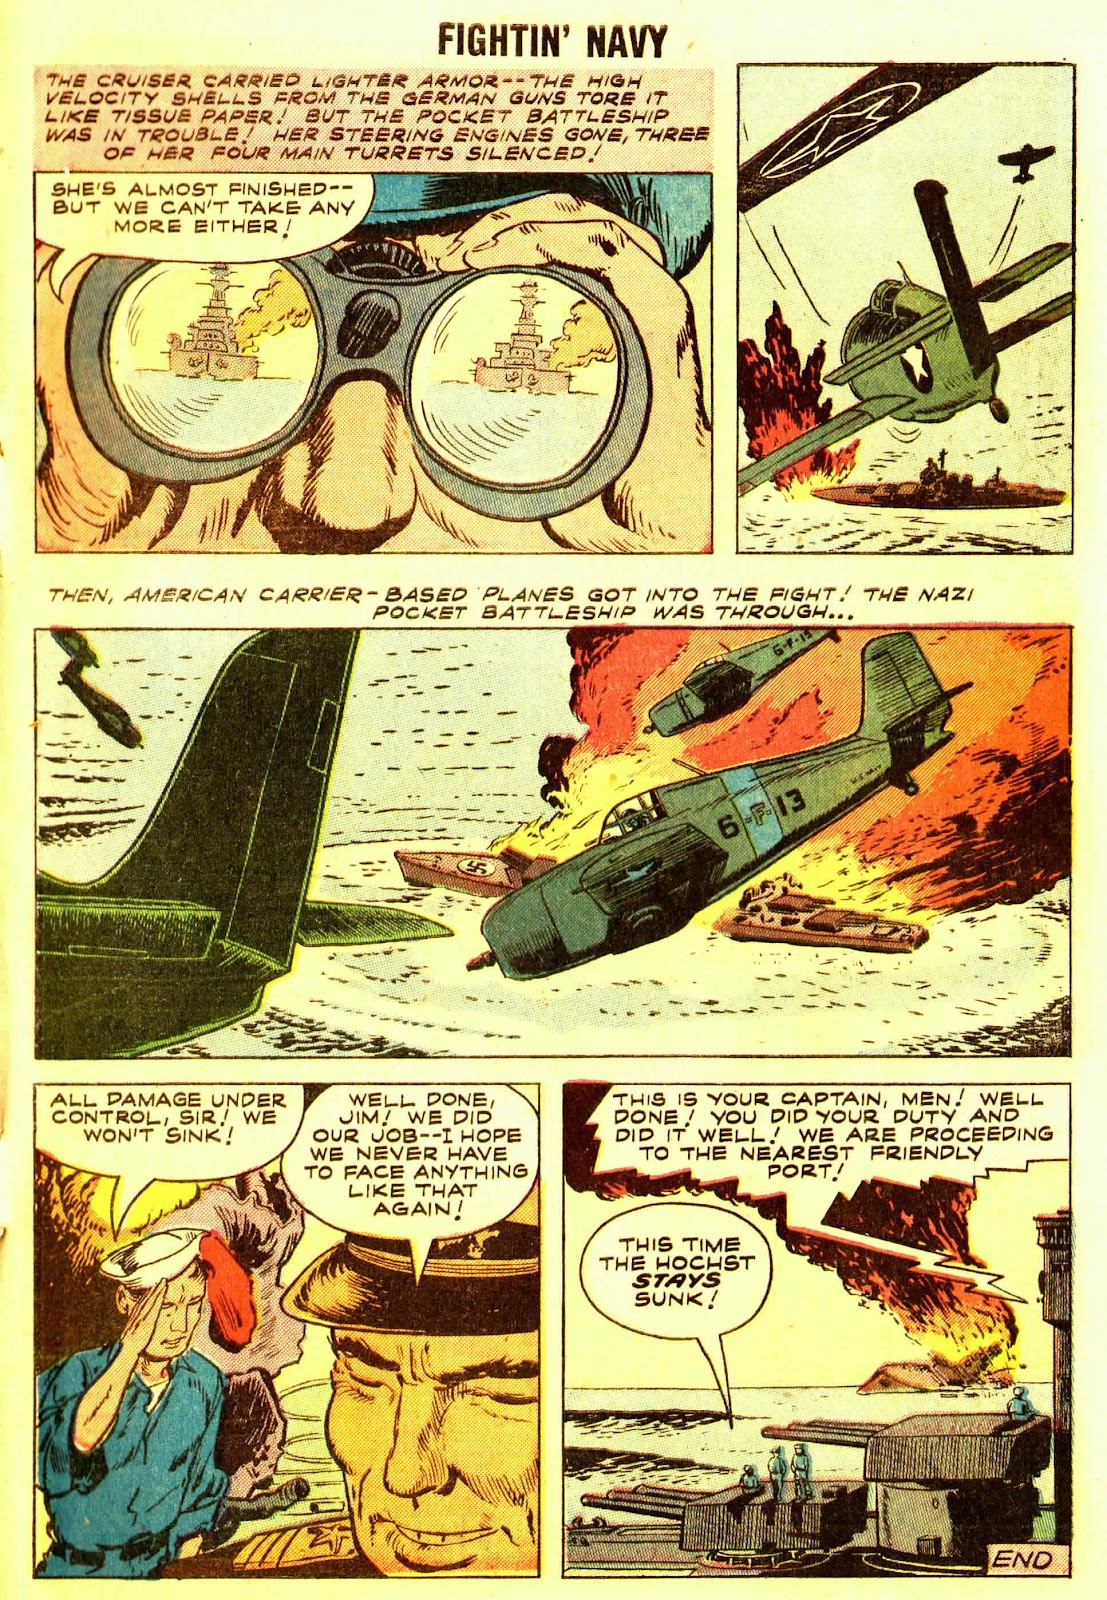 Read online Fightin' Navy comic -  Issue #83 - 9